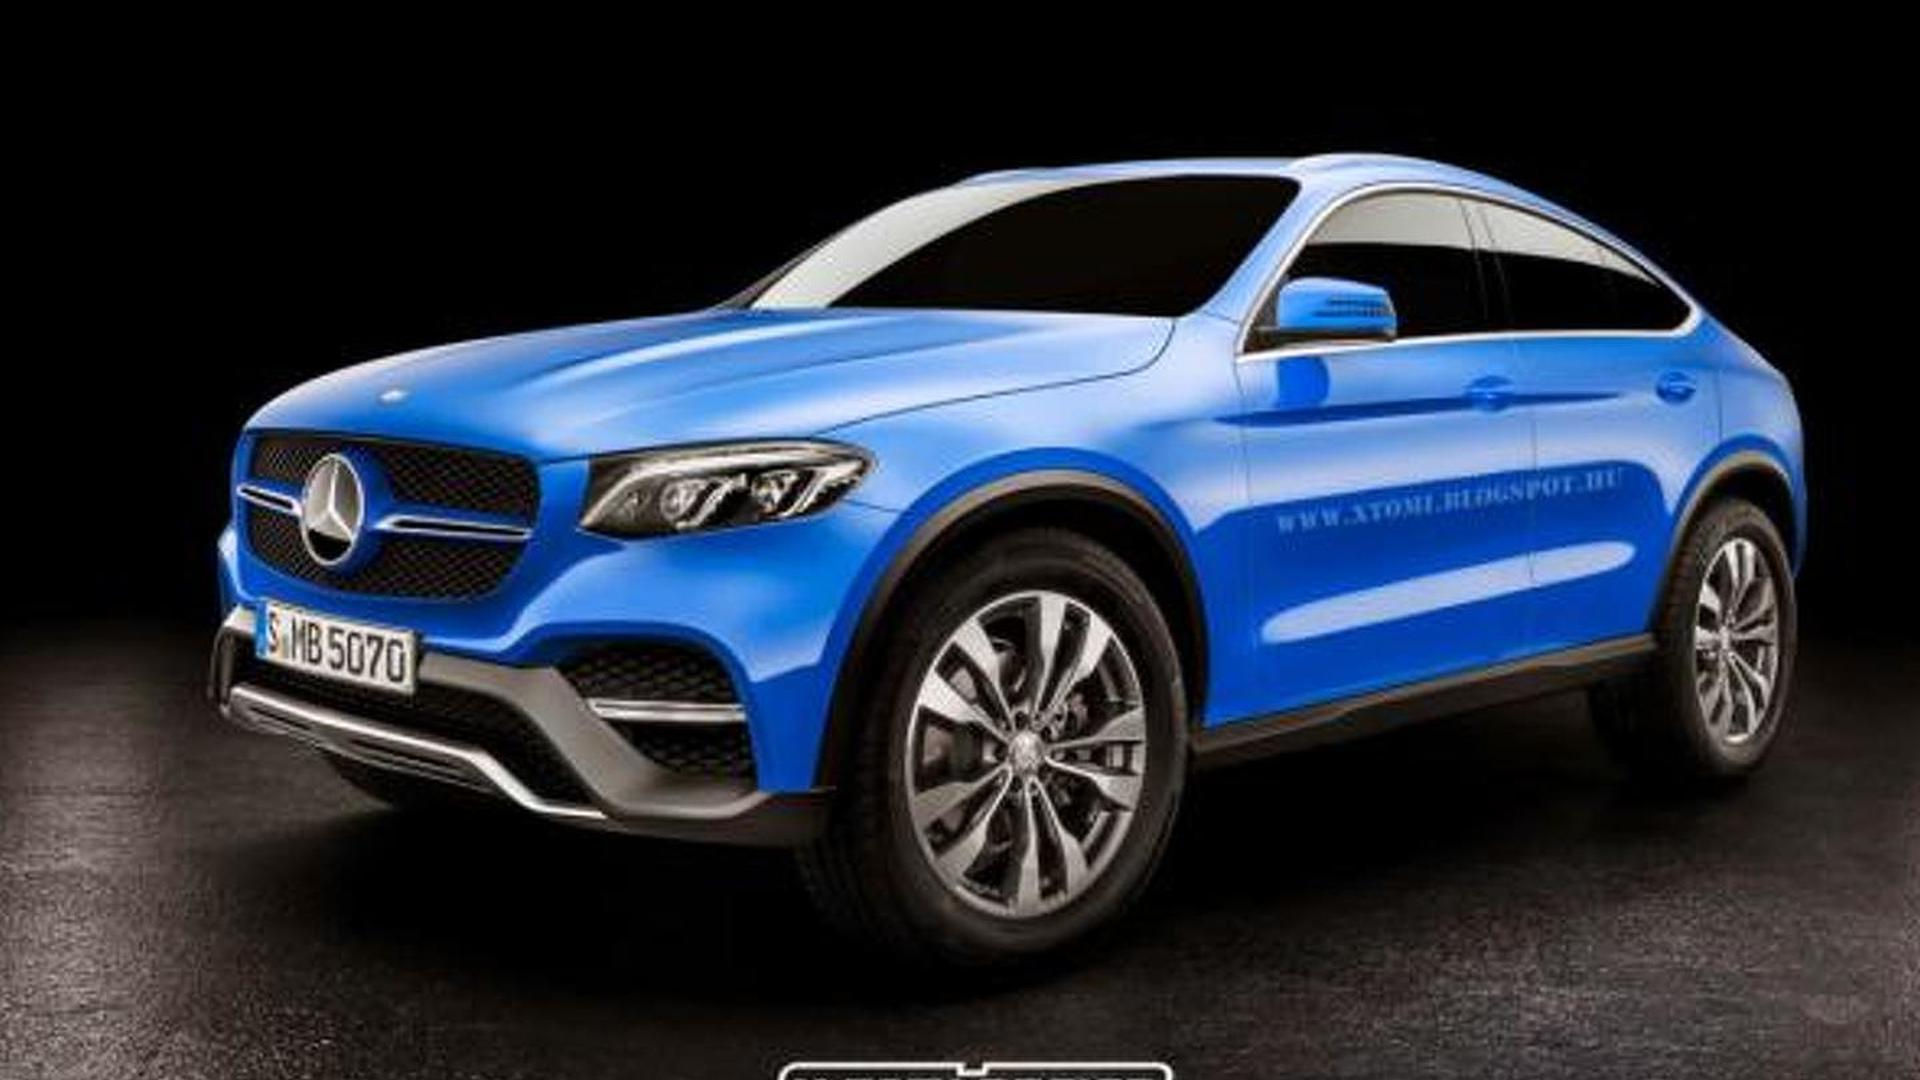 https://icdn-1.motor1.com/images/mgl/7Y1Ko/s1/2015-563864-mercedes-benz-glc-coupe-production-version-render1.jpg